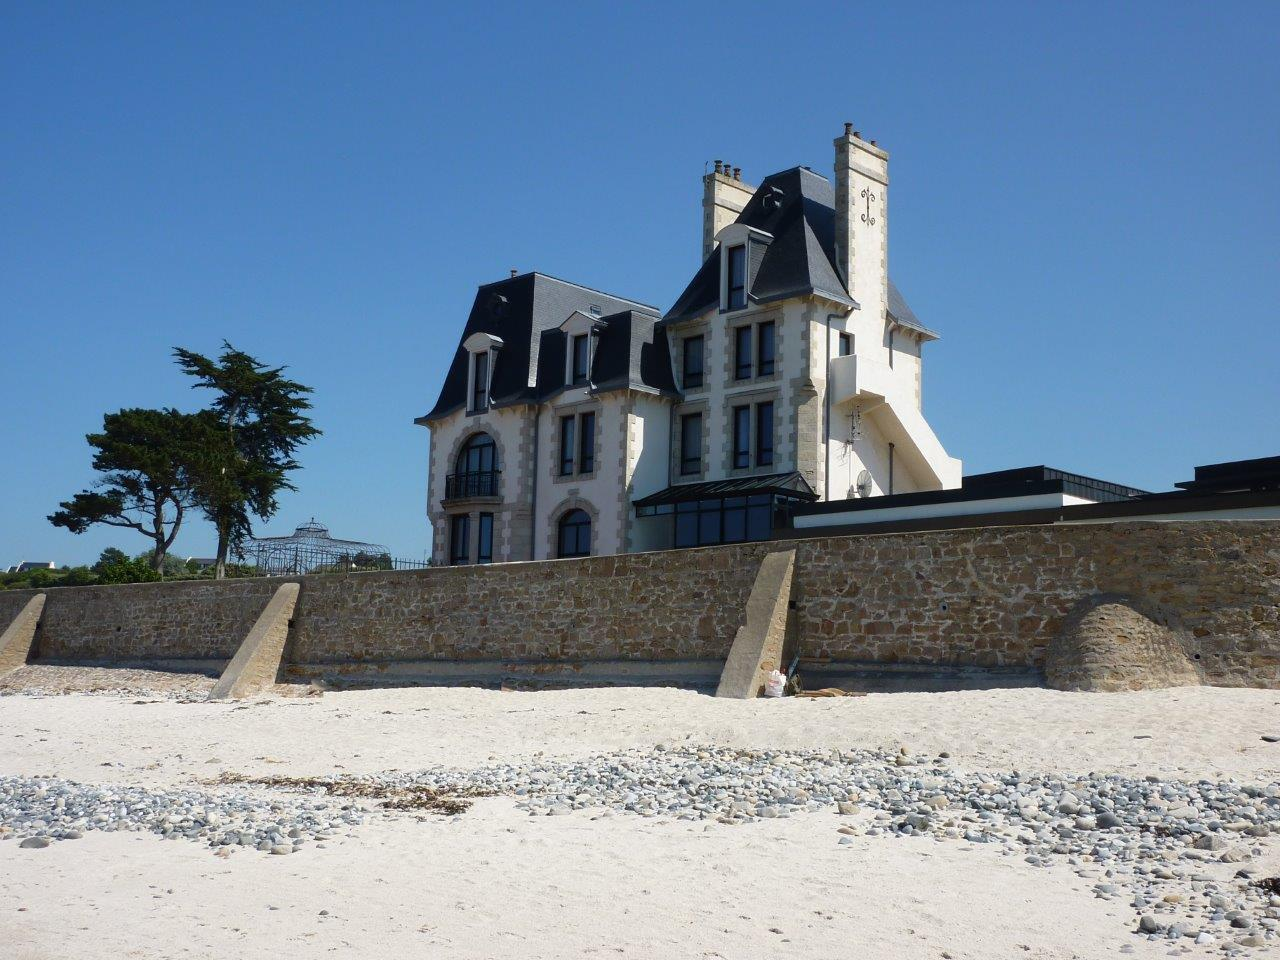 Single Family Home for Sale at Chateau Place Hebrt Other Brittany, Brittany 29600 France